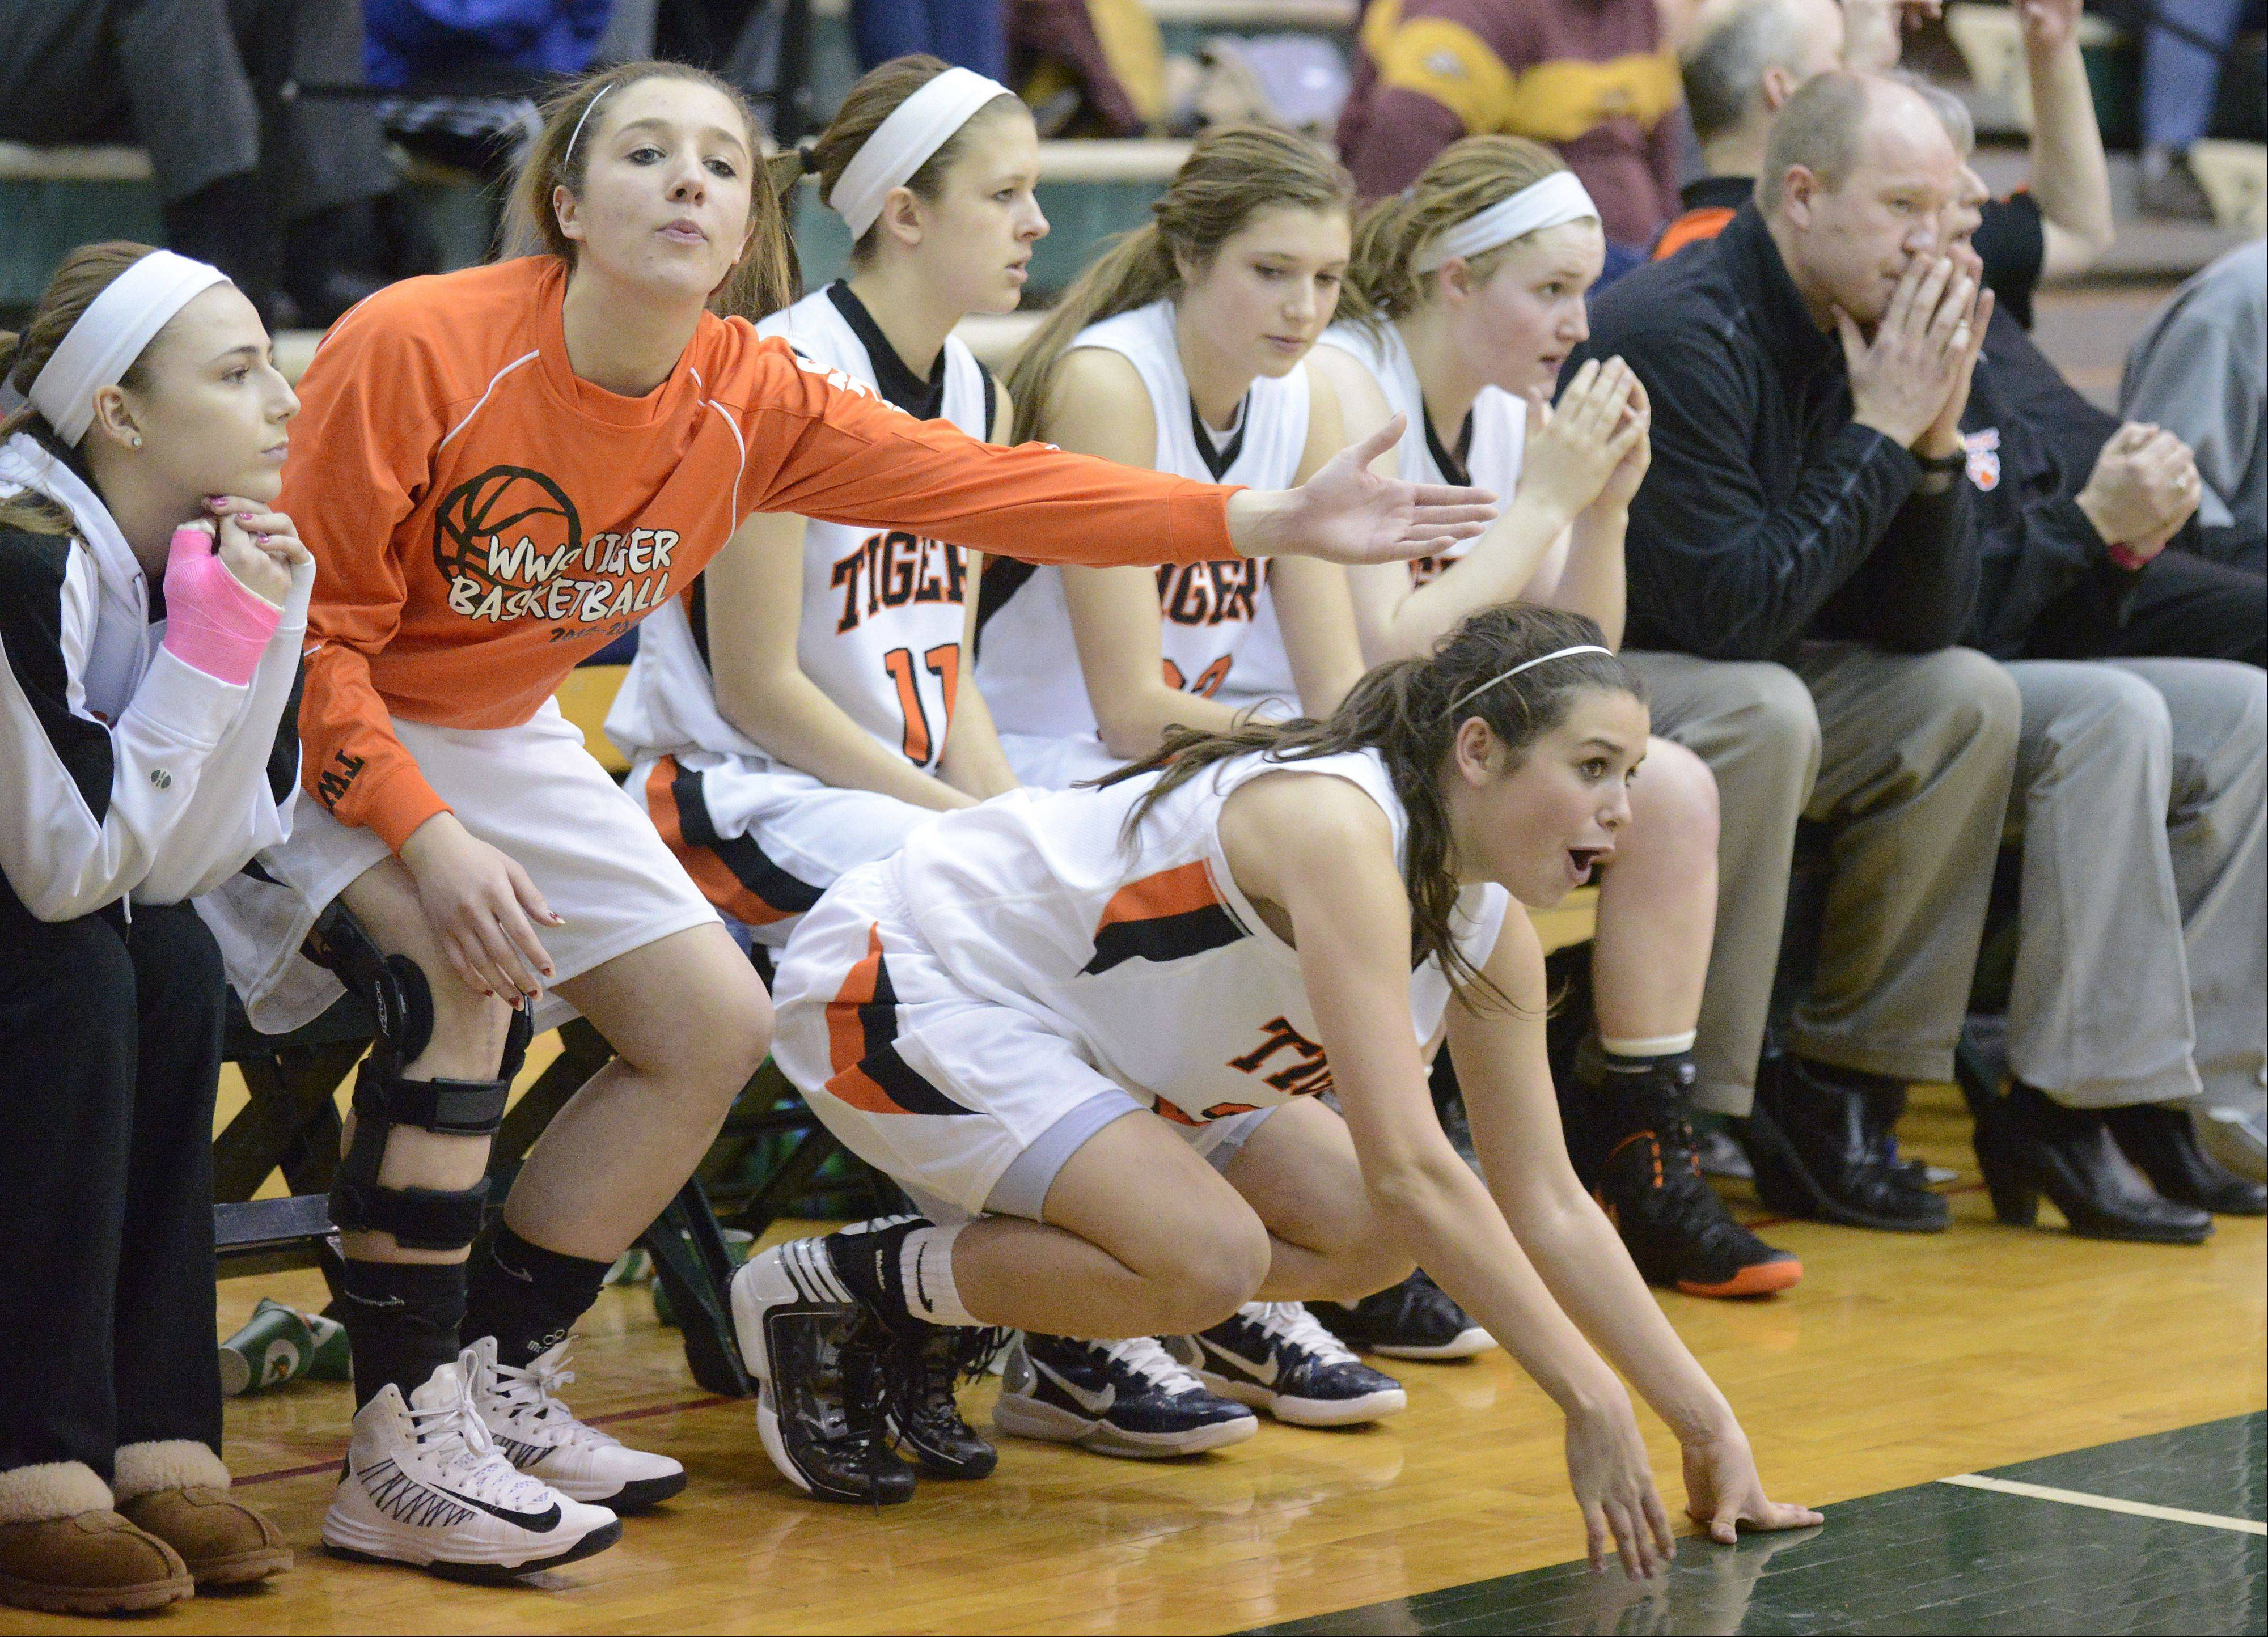 Images from the Geneva vs. Wheaton Warrenville South Class A basketball regional game on Tuesday, February 19, 2013.